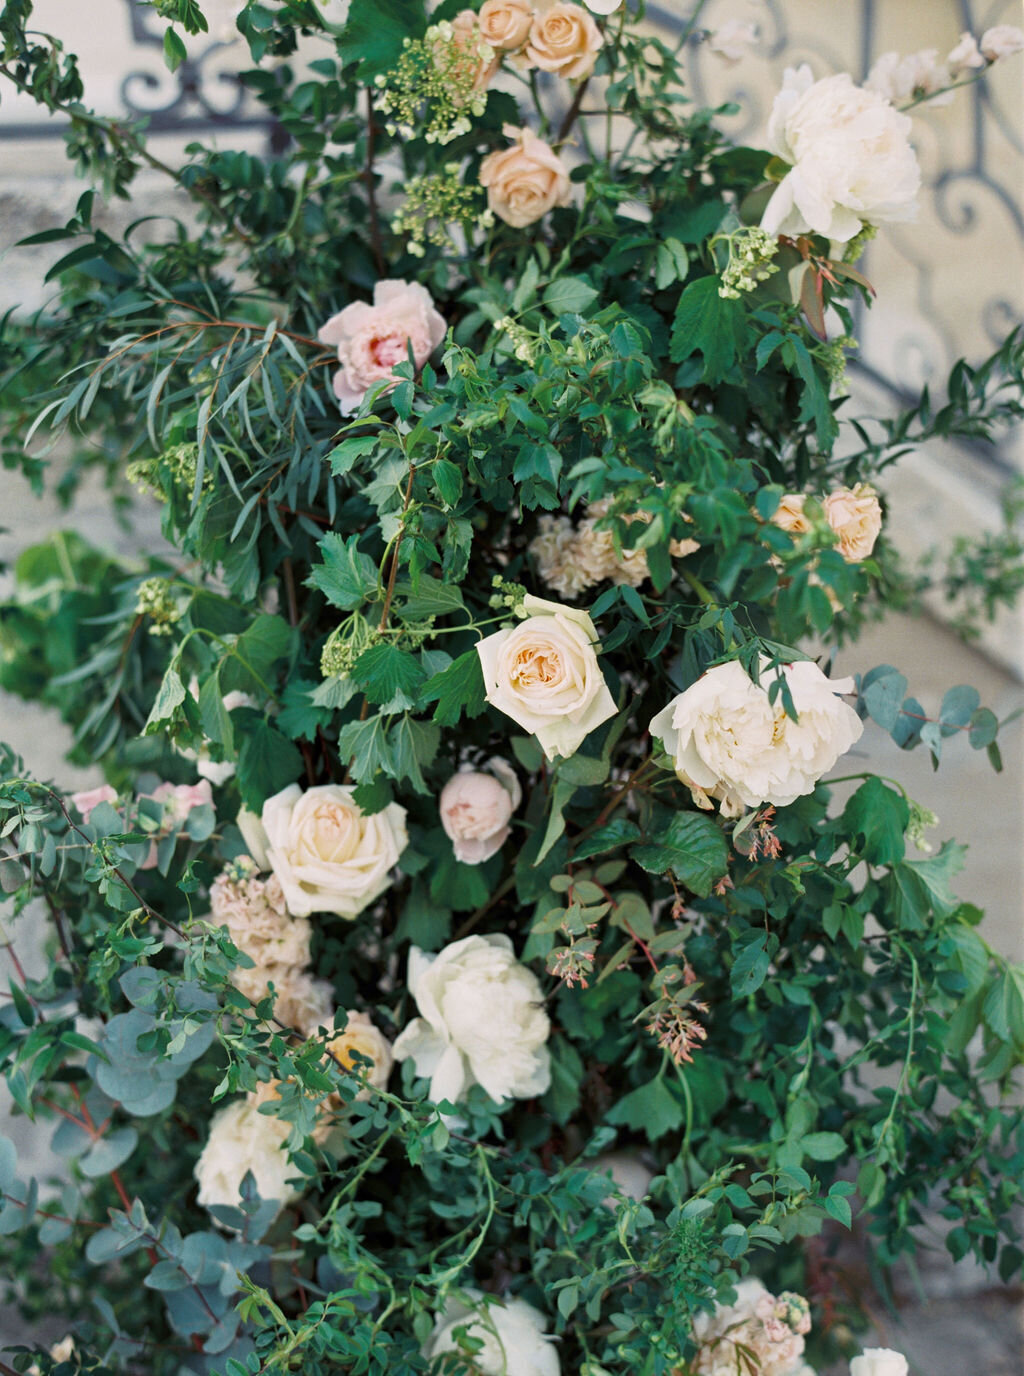 Chateau-de-Villette-wedding-Floraison51